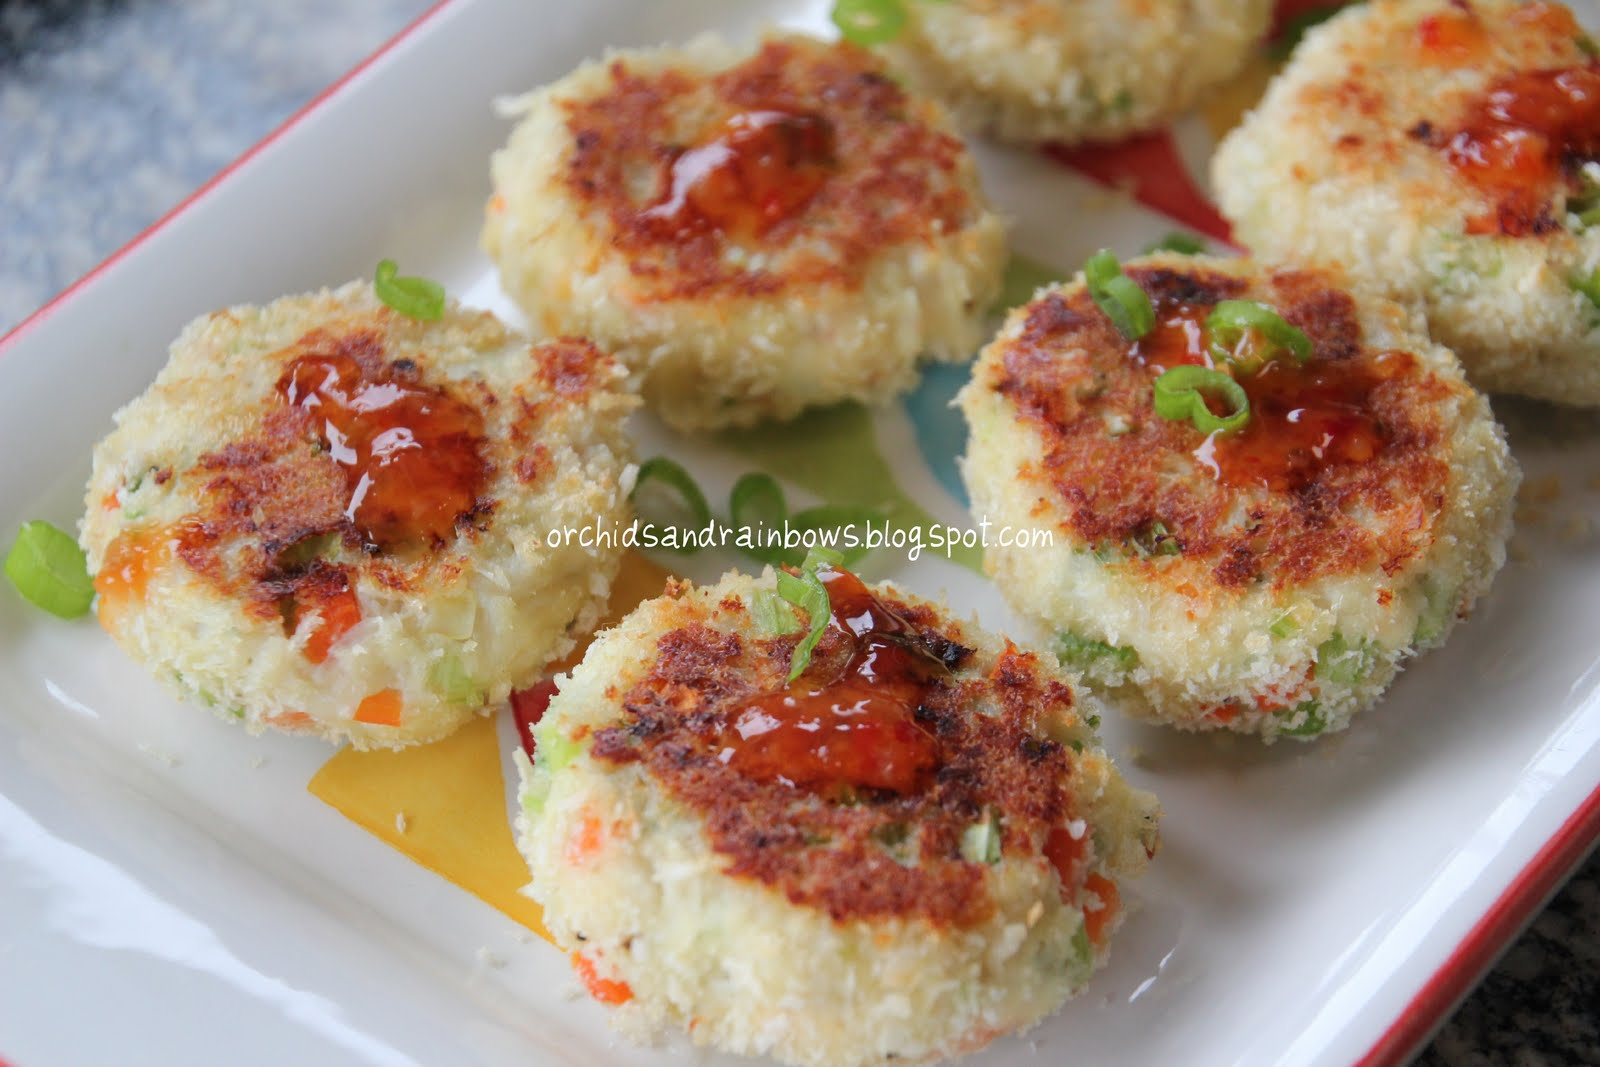 Baked Crab Cakes With Panko Bread Crumbs